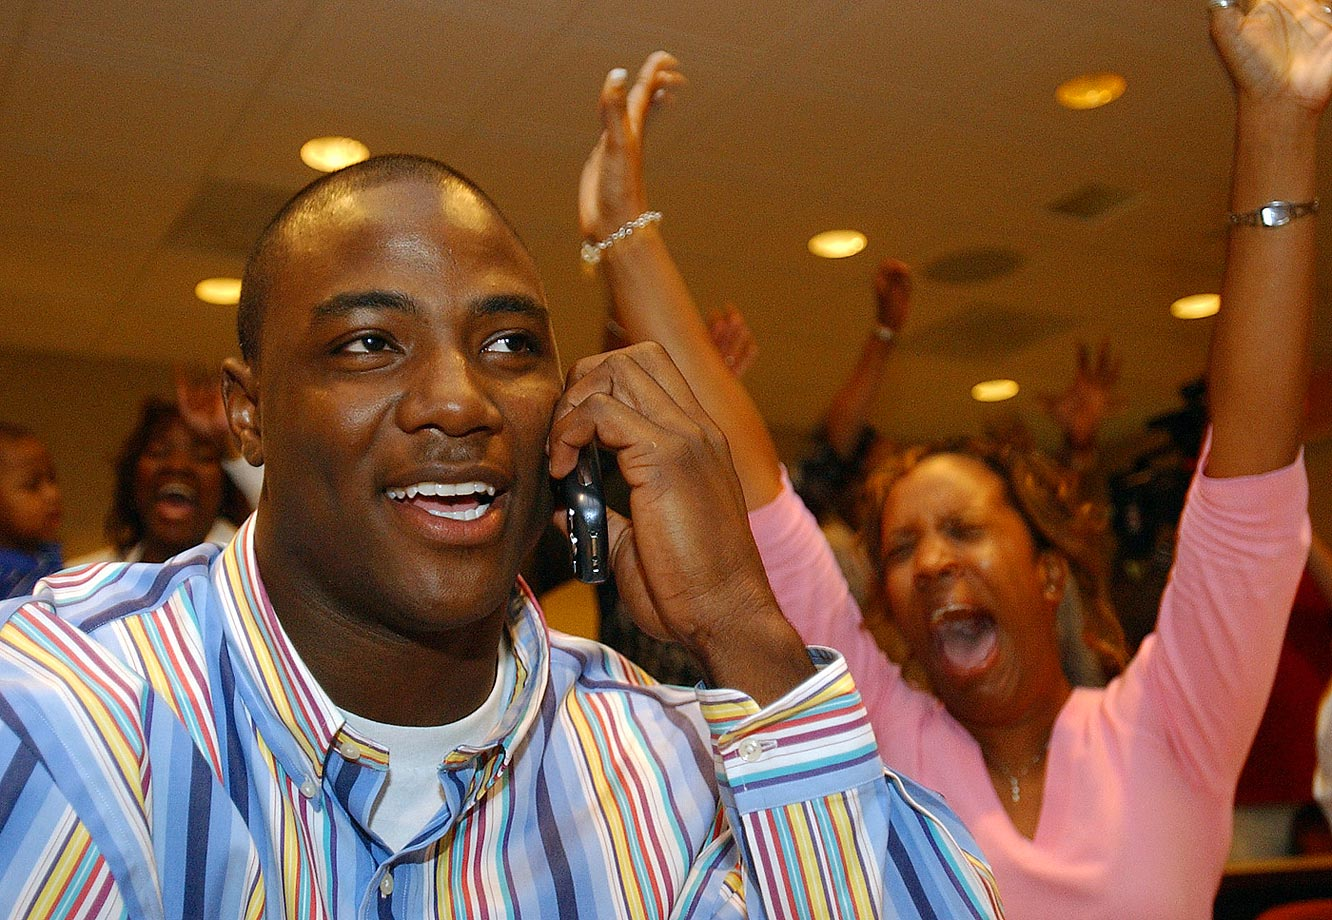 Troy defensive end DeMarcus Ware, seated next to his fiancee, reacts to news that the Dallas Cowboys had selected him in the first round of the 2005 draft.